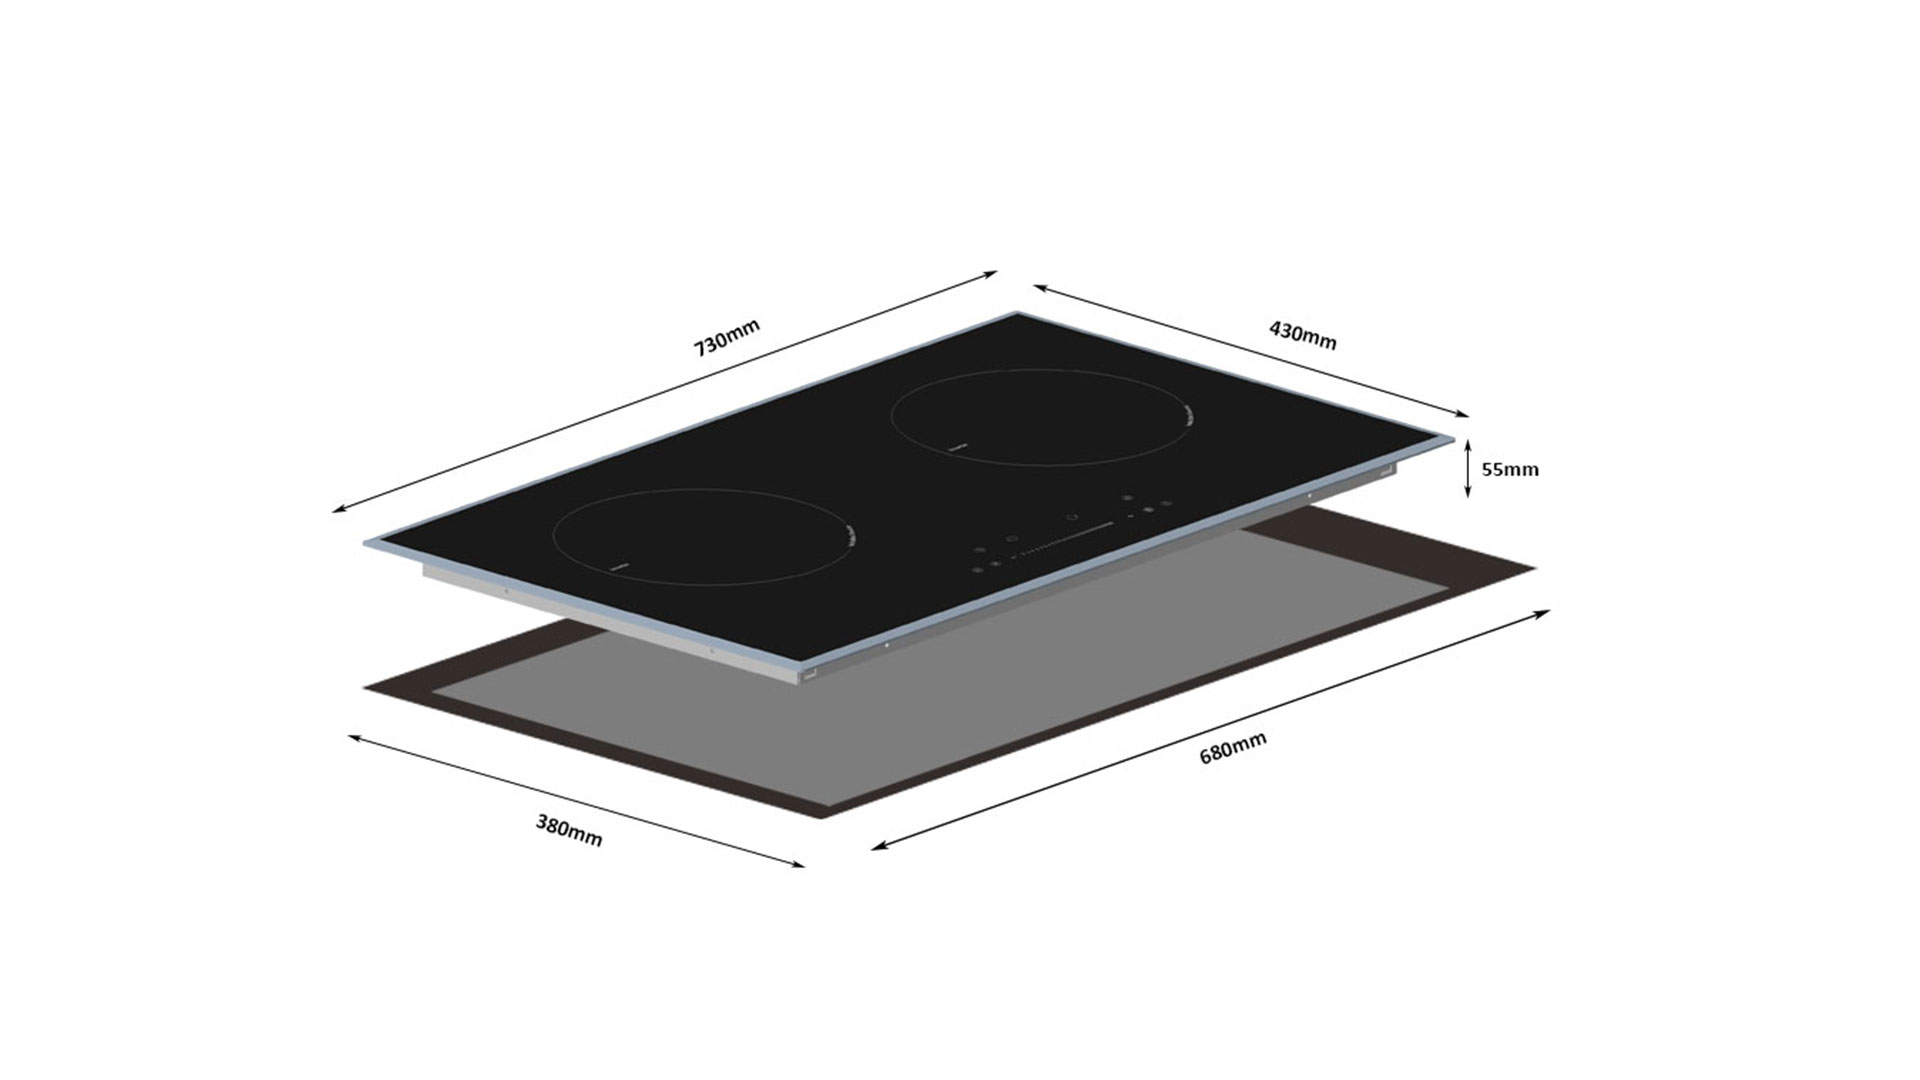 Professional Top 10 Induction Cooktop with Two Burner 8126-201